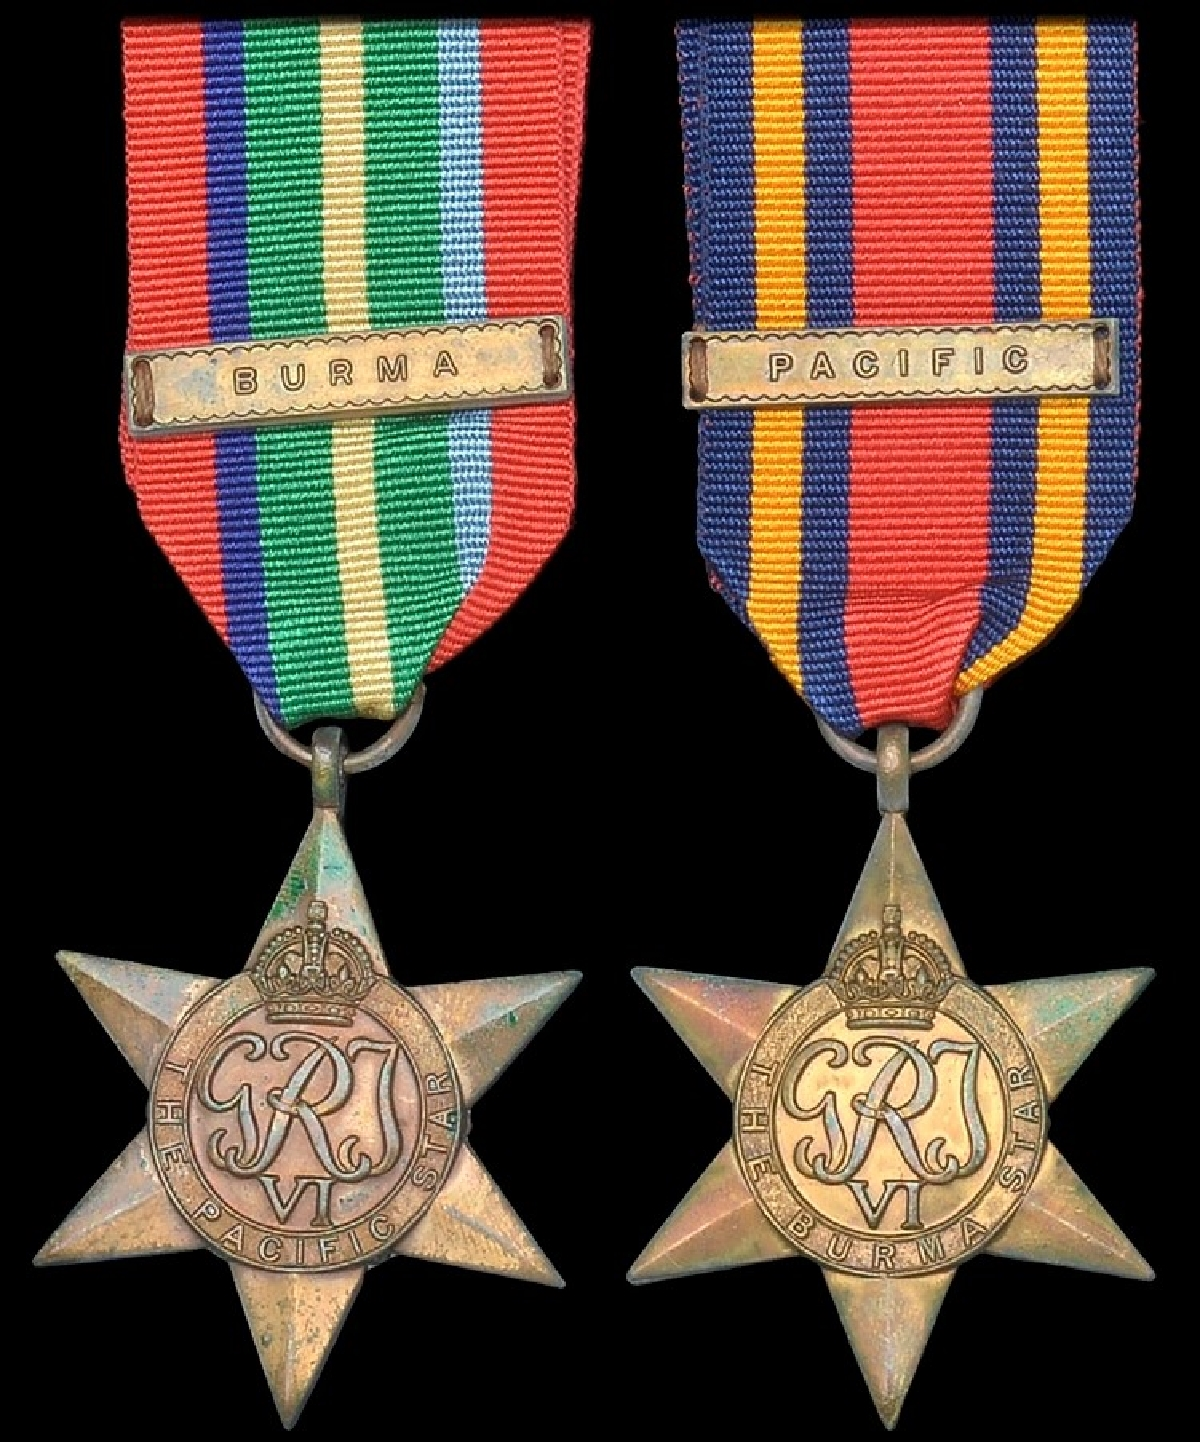 The obverse of the Pacific and Burma Stars, showing the two ribbon clasps which could also be awarded. The reverse was plain